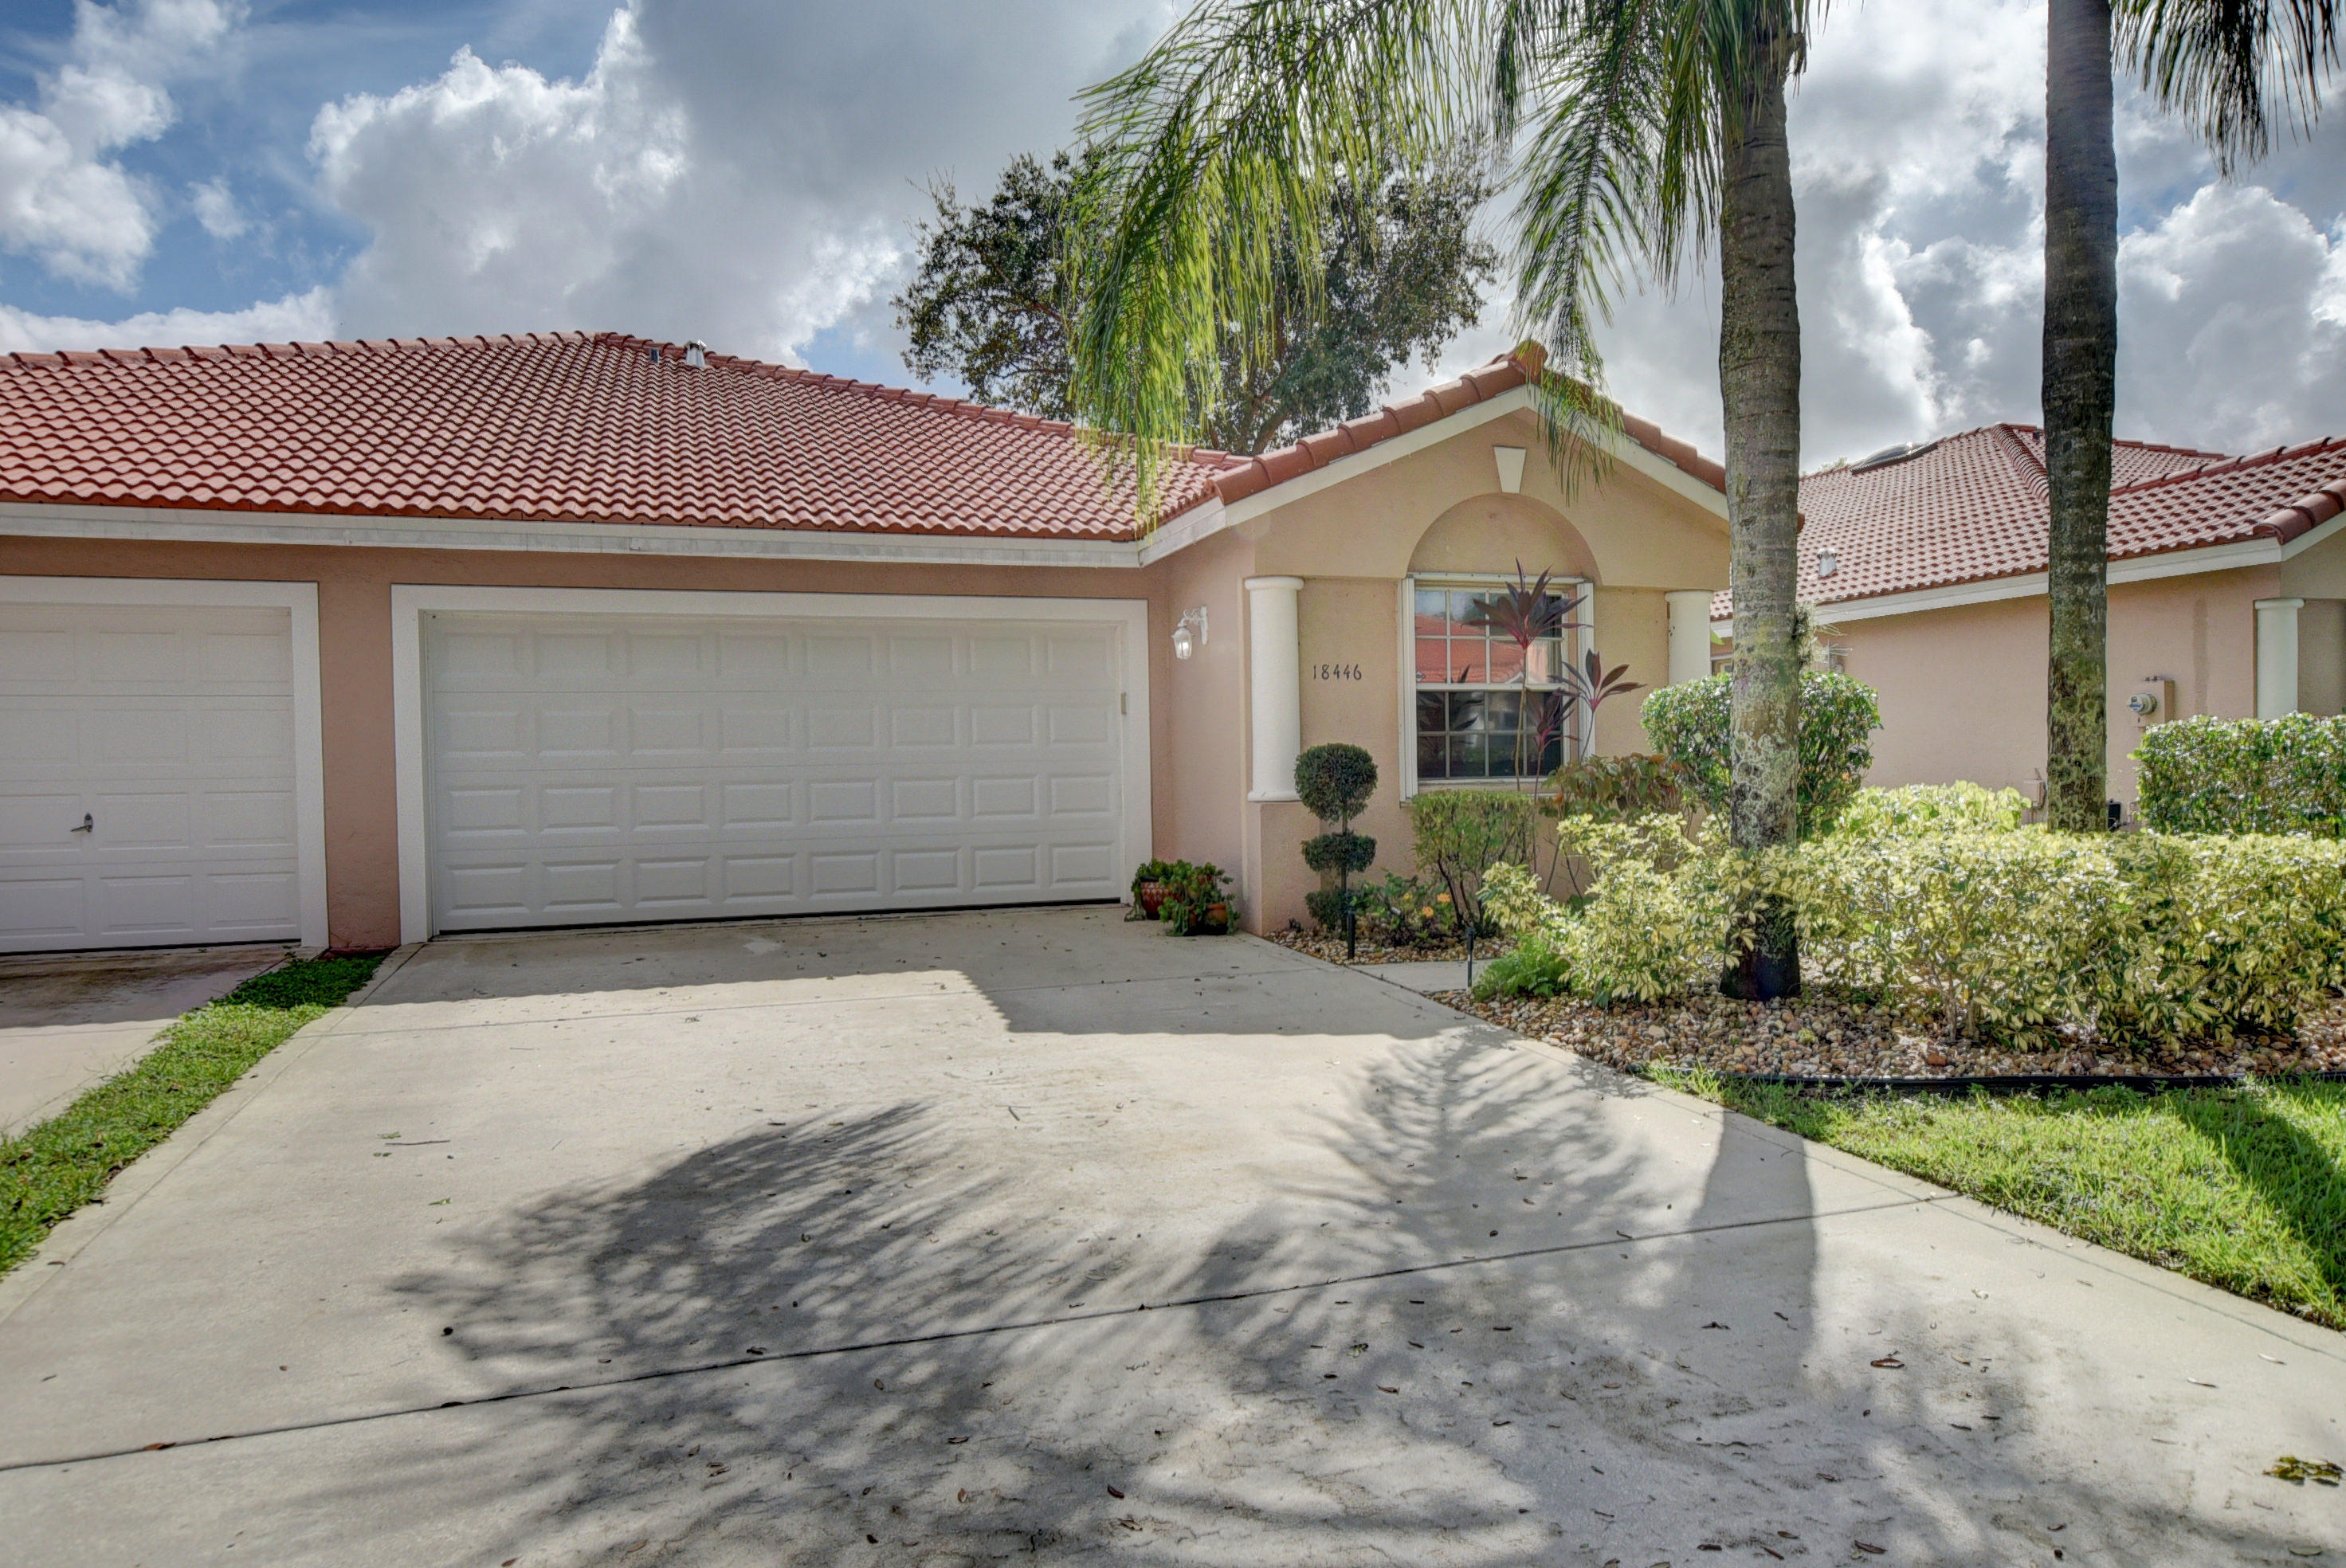 Details for 18446 Via Di Sorrento, Boca Raton, FL 33496